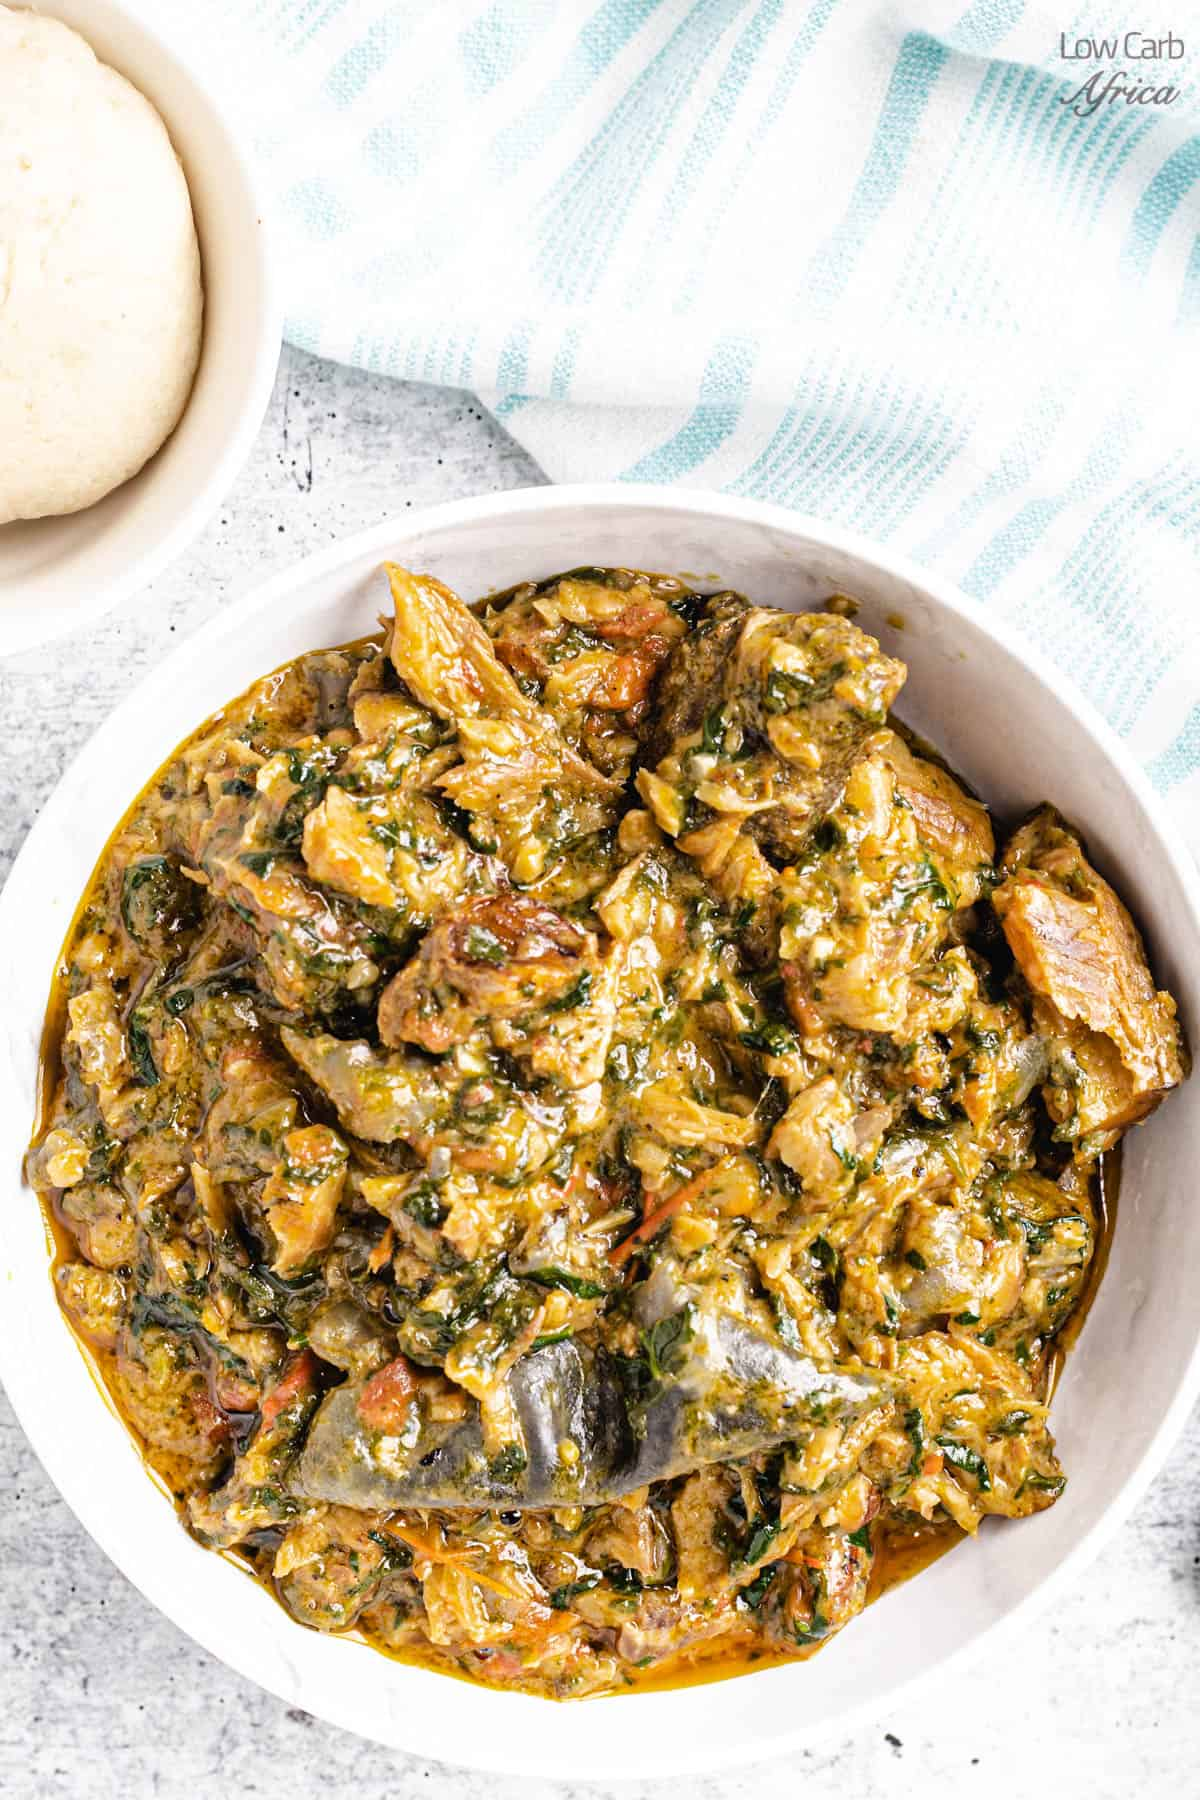 Fumbwa spinach stew on a white plate